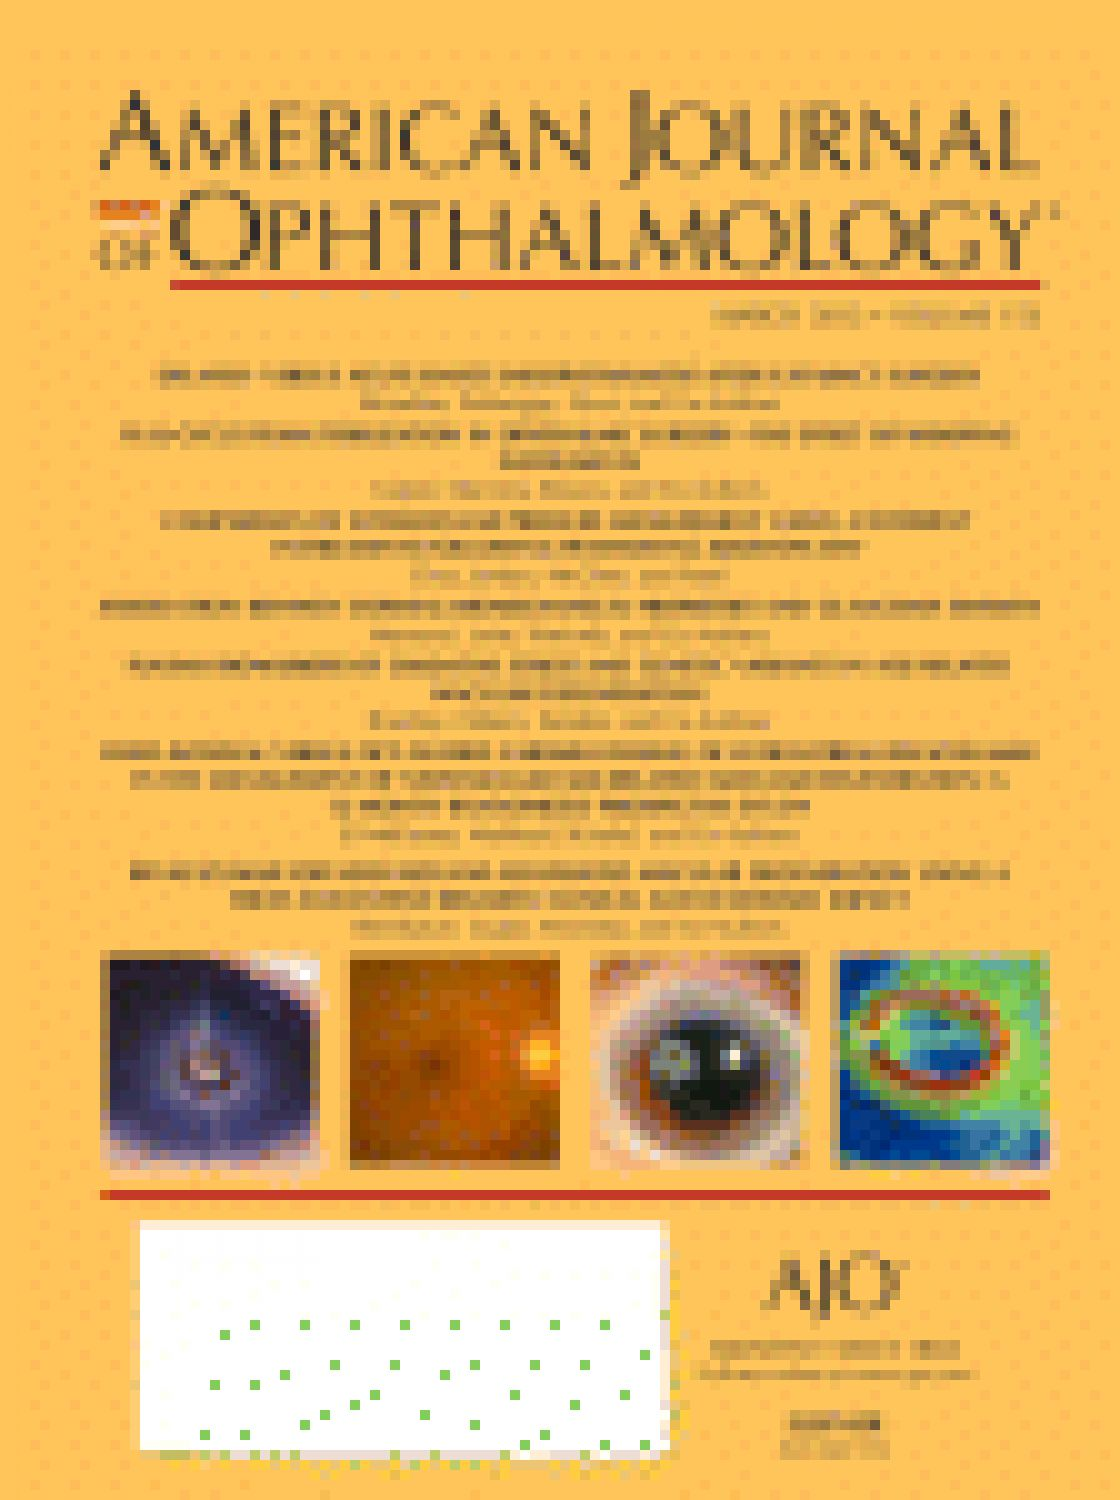 Comparison of intraocular pressure measurement using 4 different instruments following penetrating keratoplasty